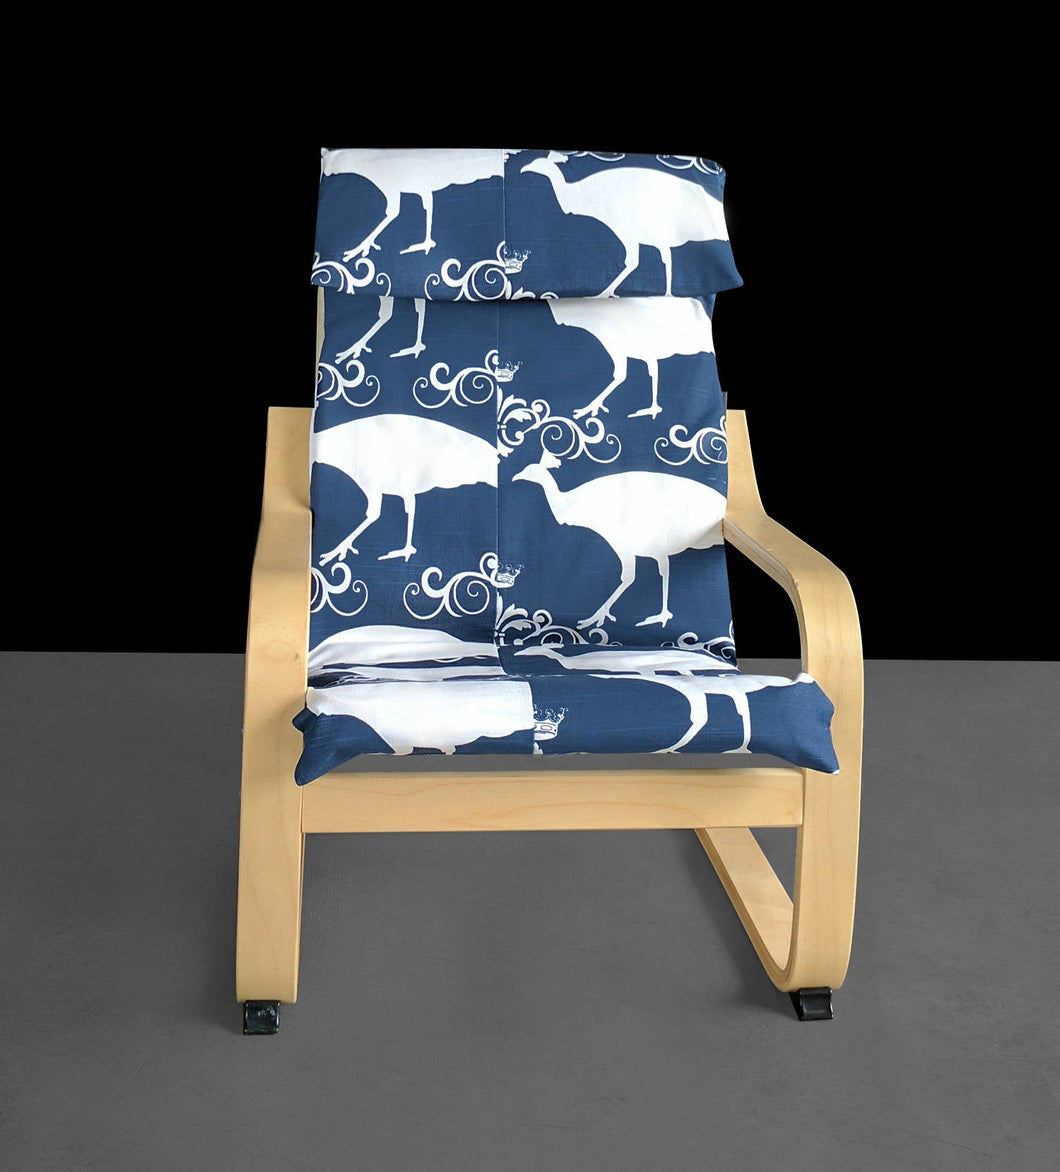 SAMPLE Navy Blue Peacock Ikea KIDS POÄNG Cushion Slipcover